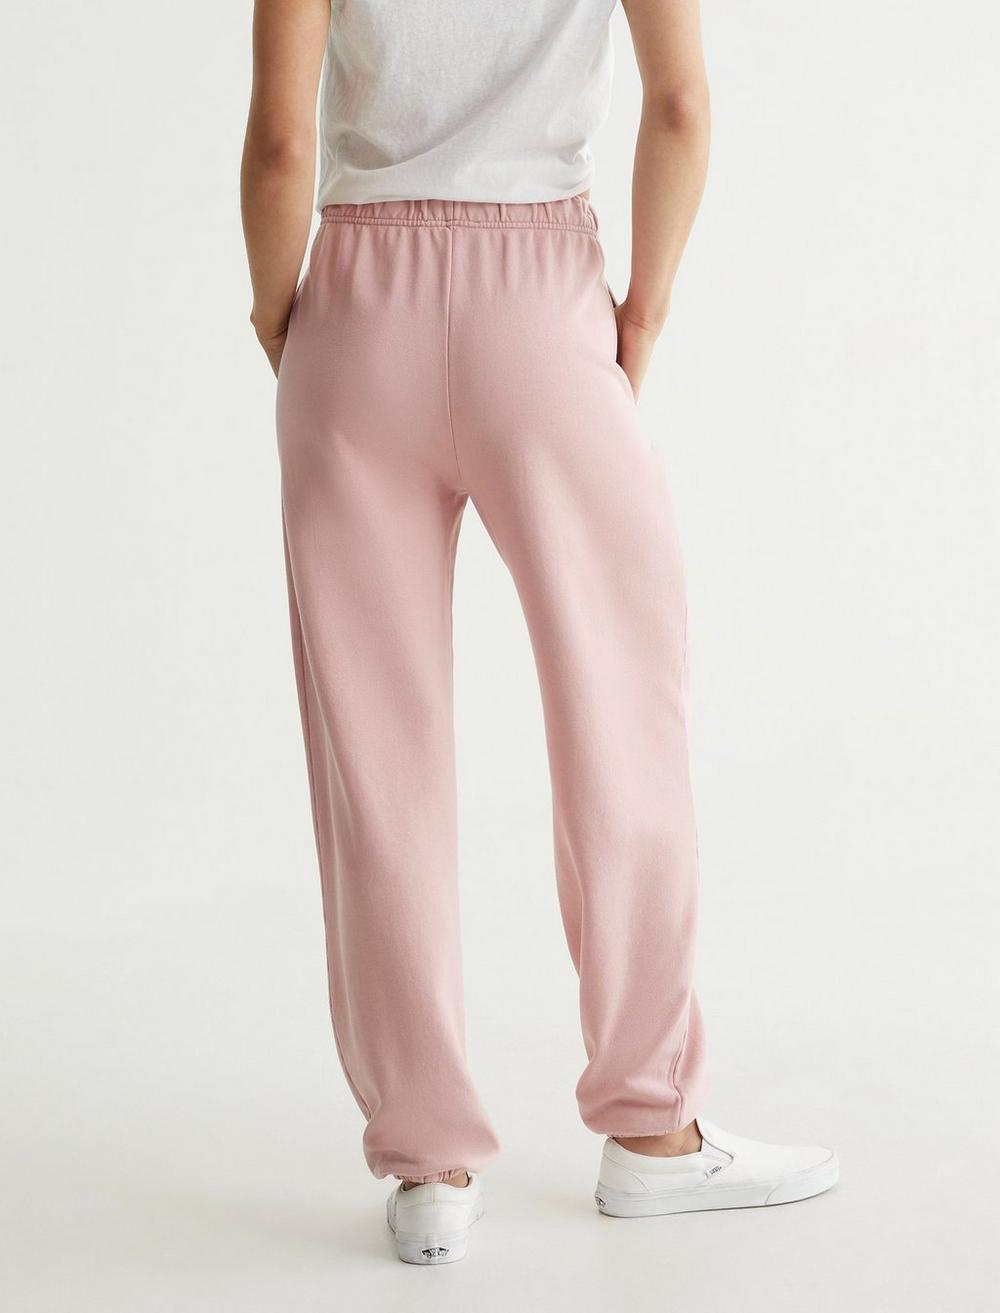 CHILL AT HOME FLEECE JOGGER, image 4